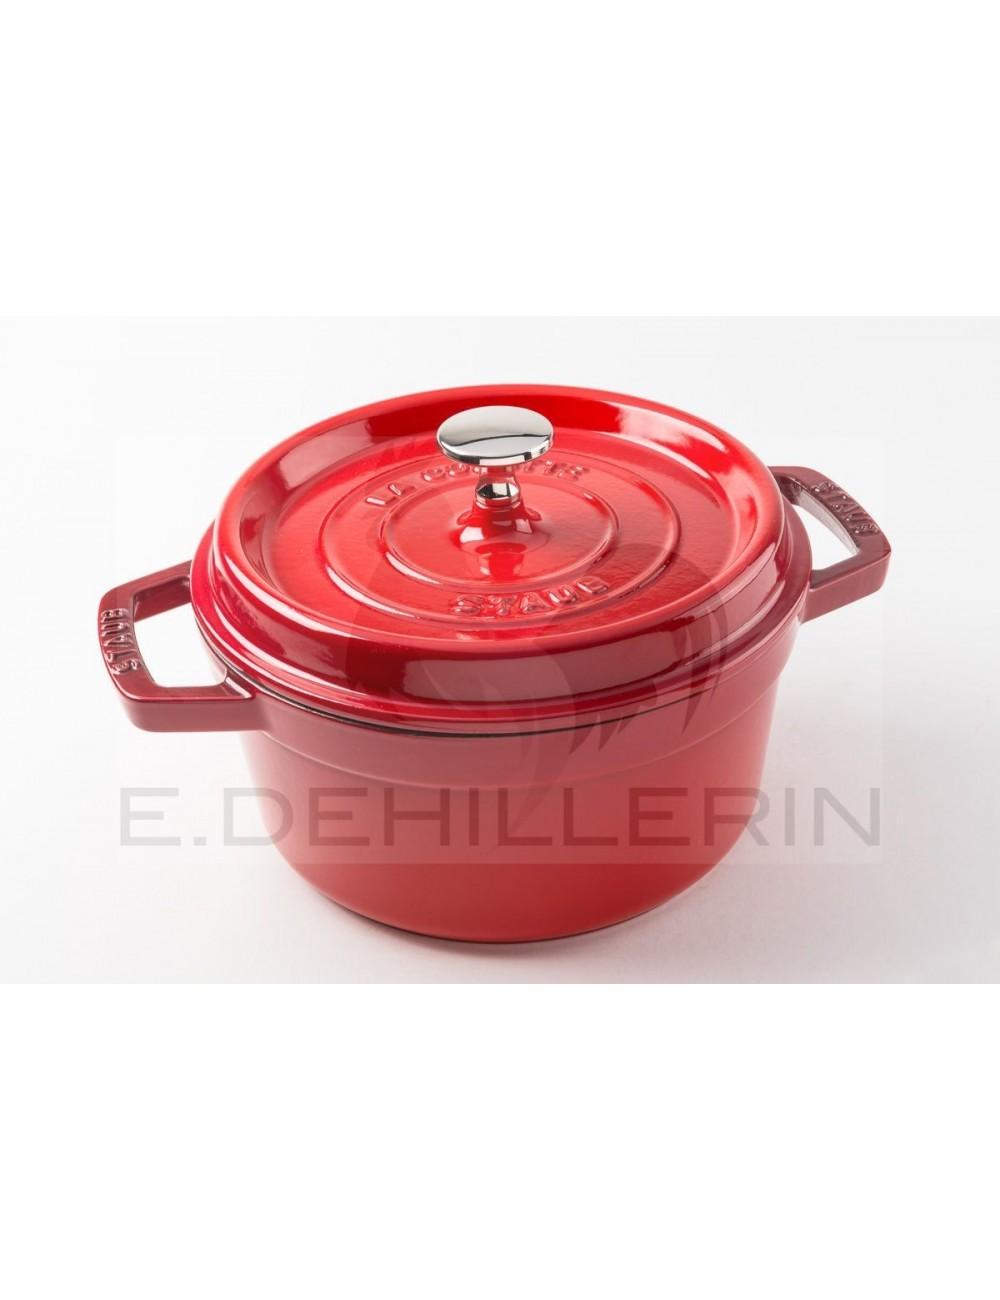 COCOTTE FONTE RONDE ROUGE - STAUB